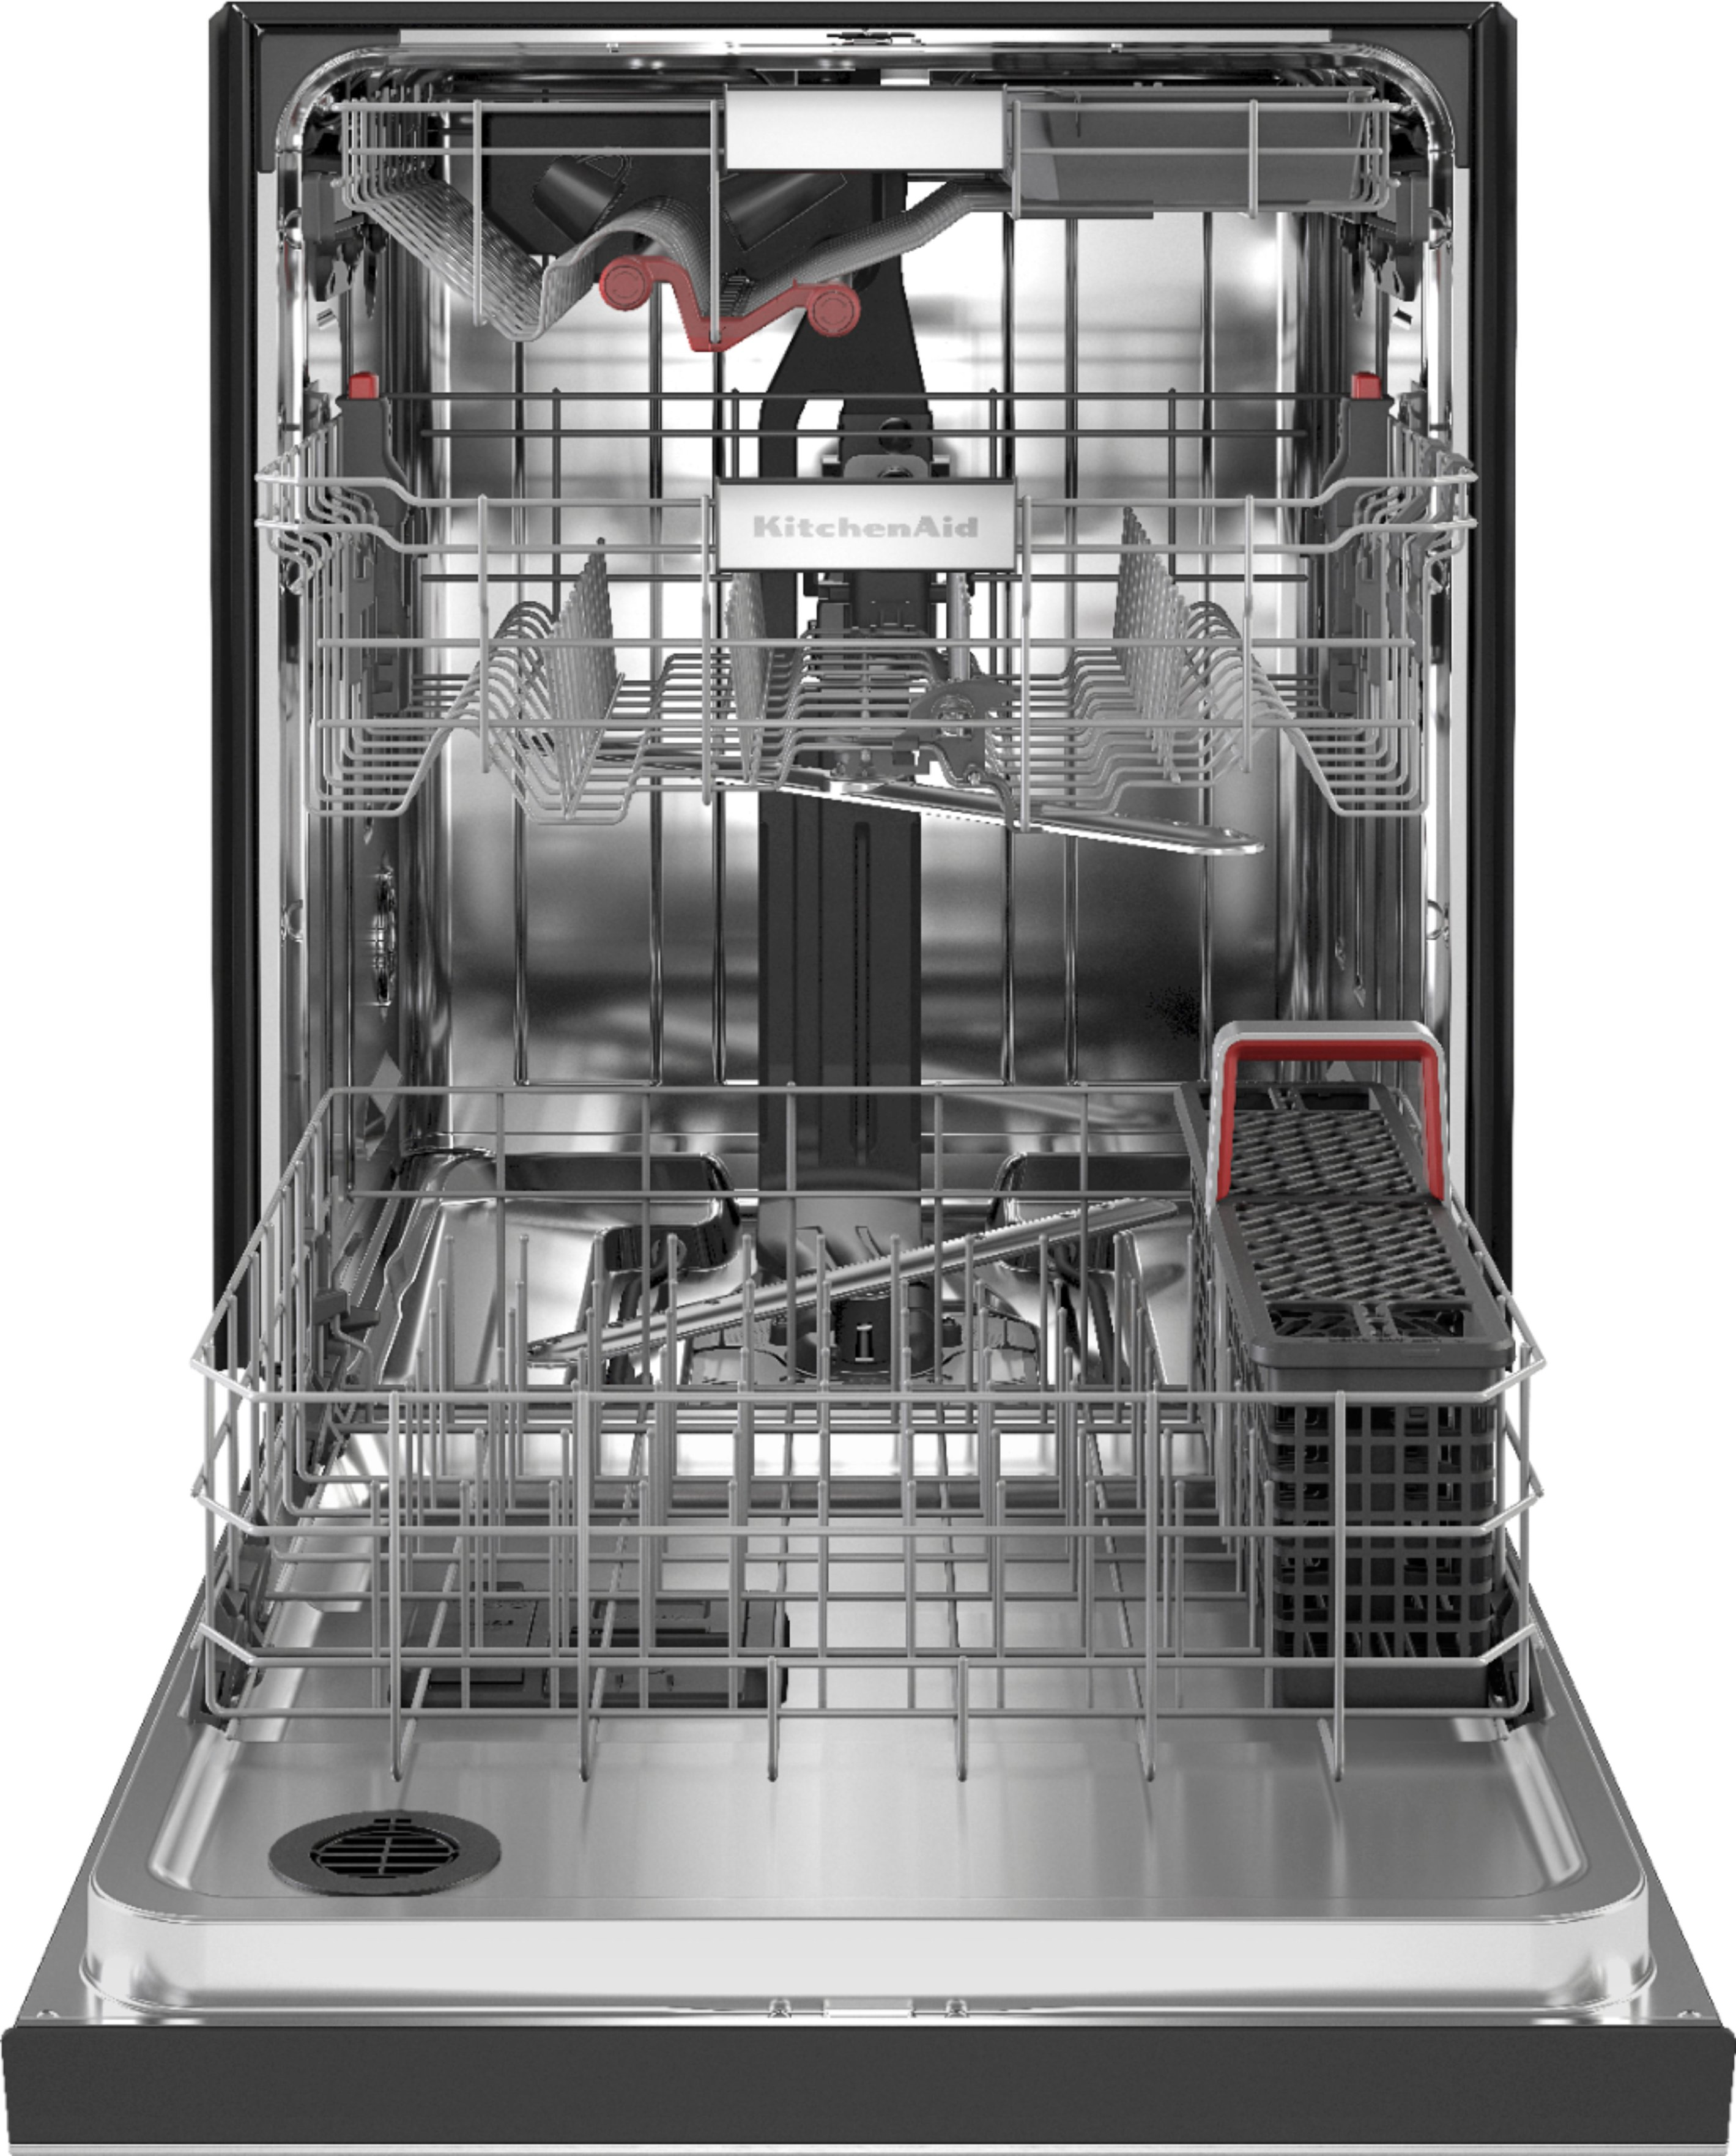 kitchenaid front control built in dishwasher with stainless steel tub freeflex third rack 44dba stainless steel with printshield finish